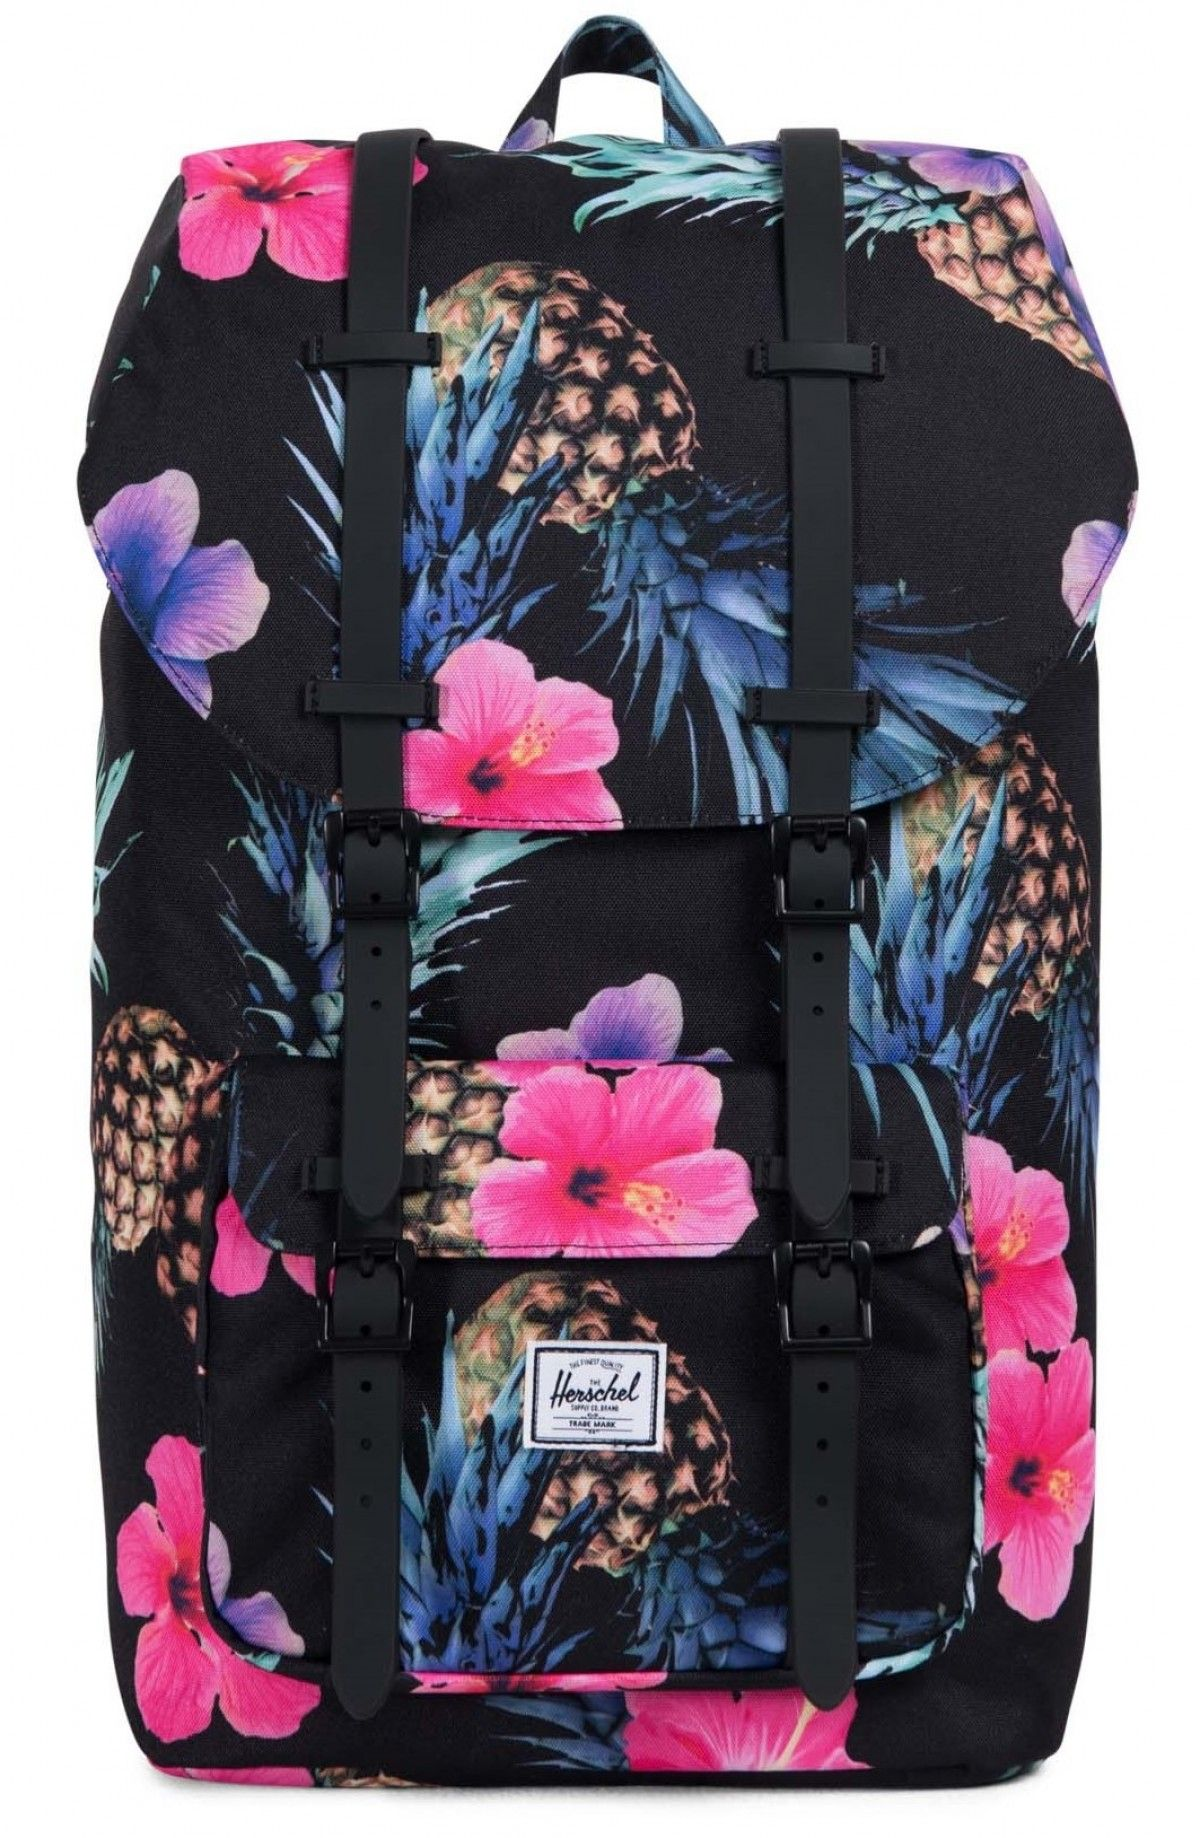 4701a89f78 Herschel Little America Backpack 600D Poly Black Pineapple Black ...